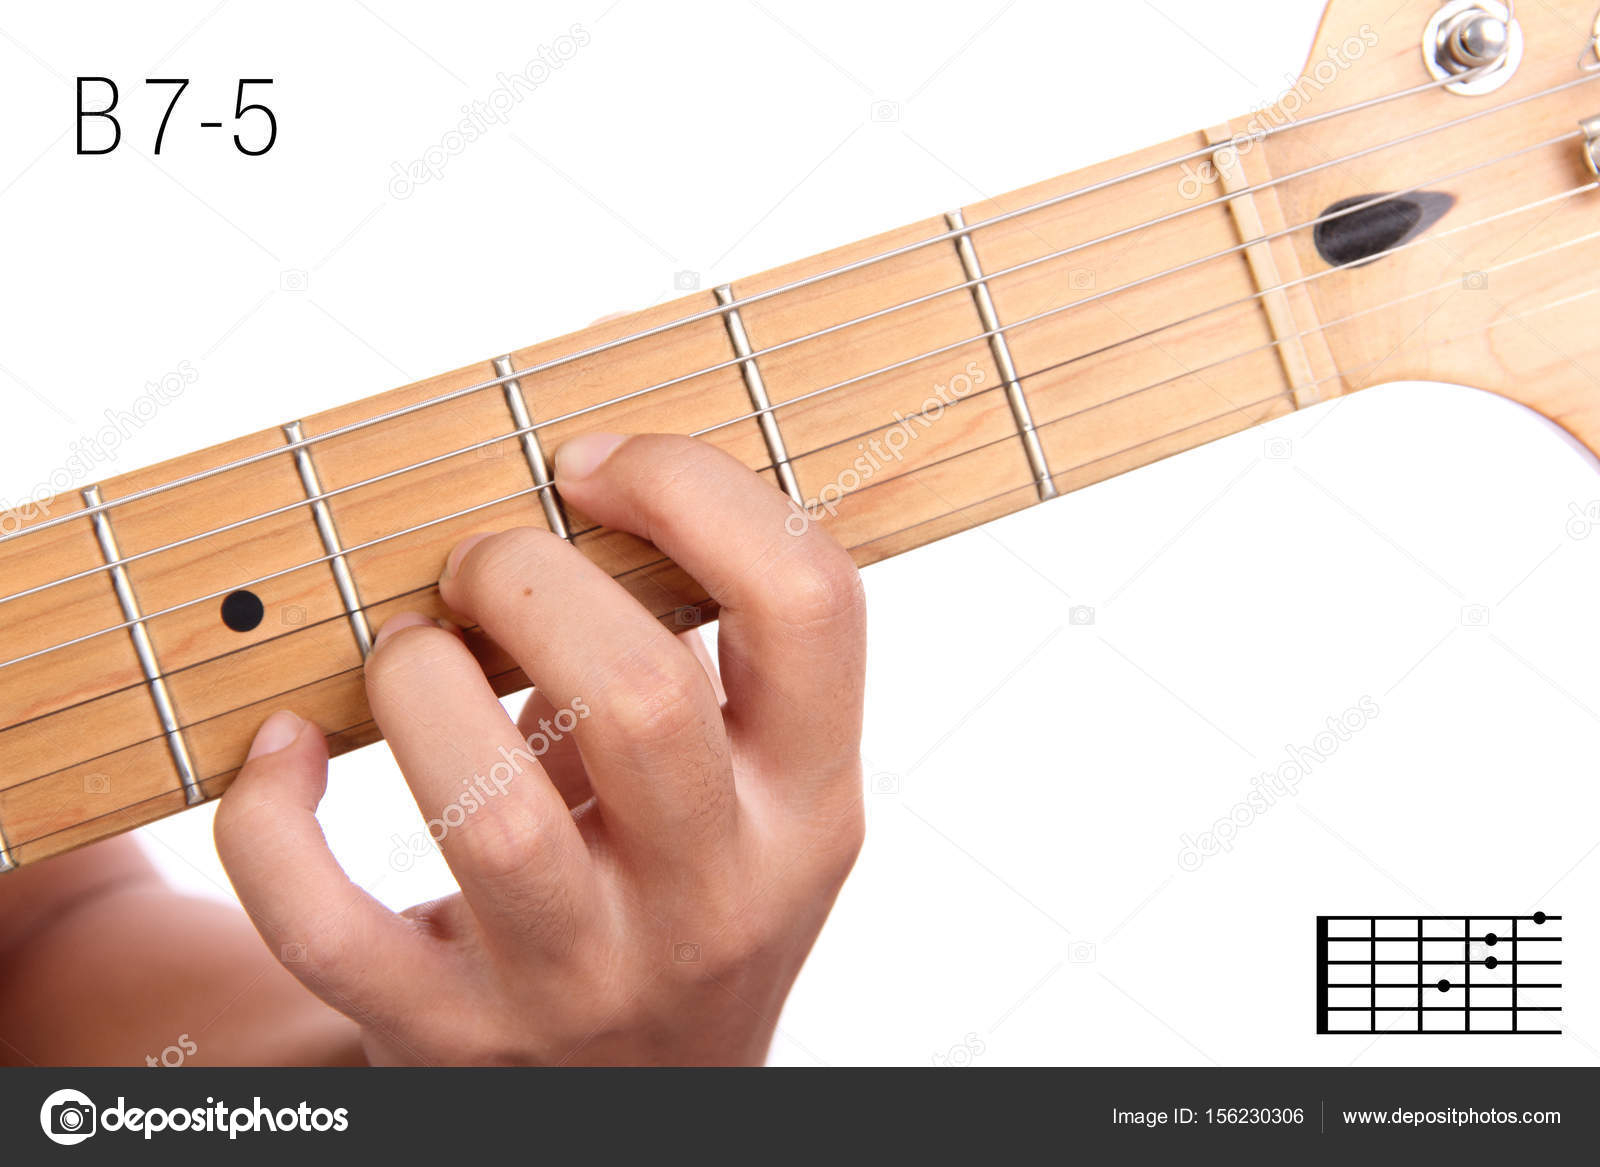 B7 Guitar Chord B7 5 Guitar Chord Tutorial Stock Photo Pepscostudio 156230306